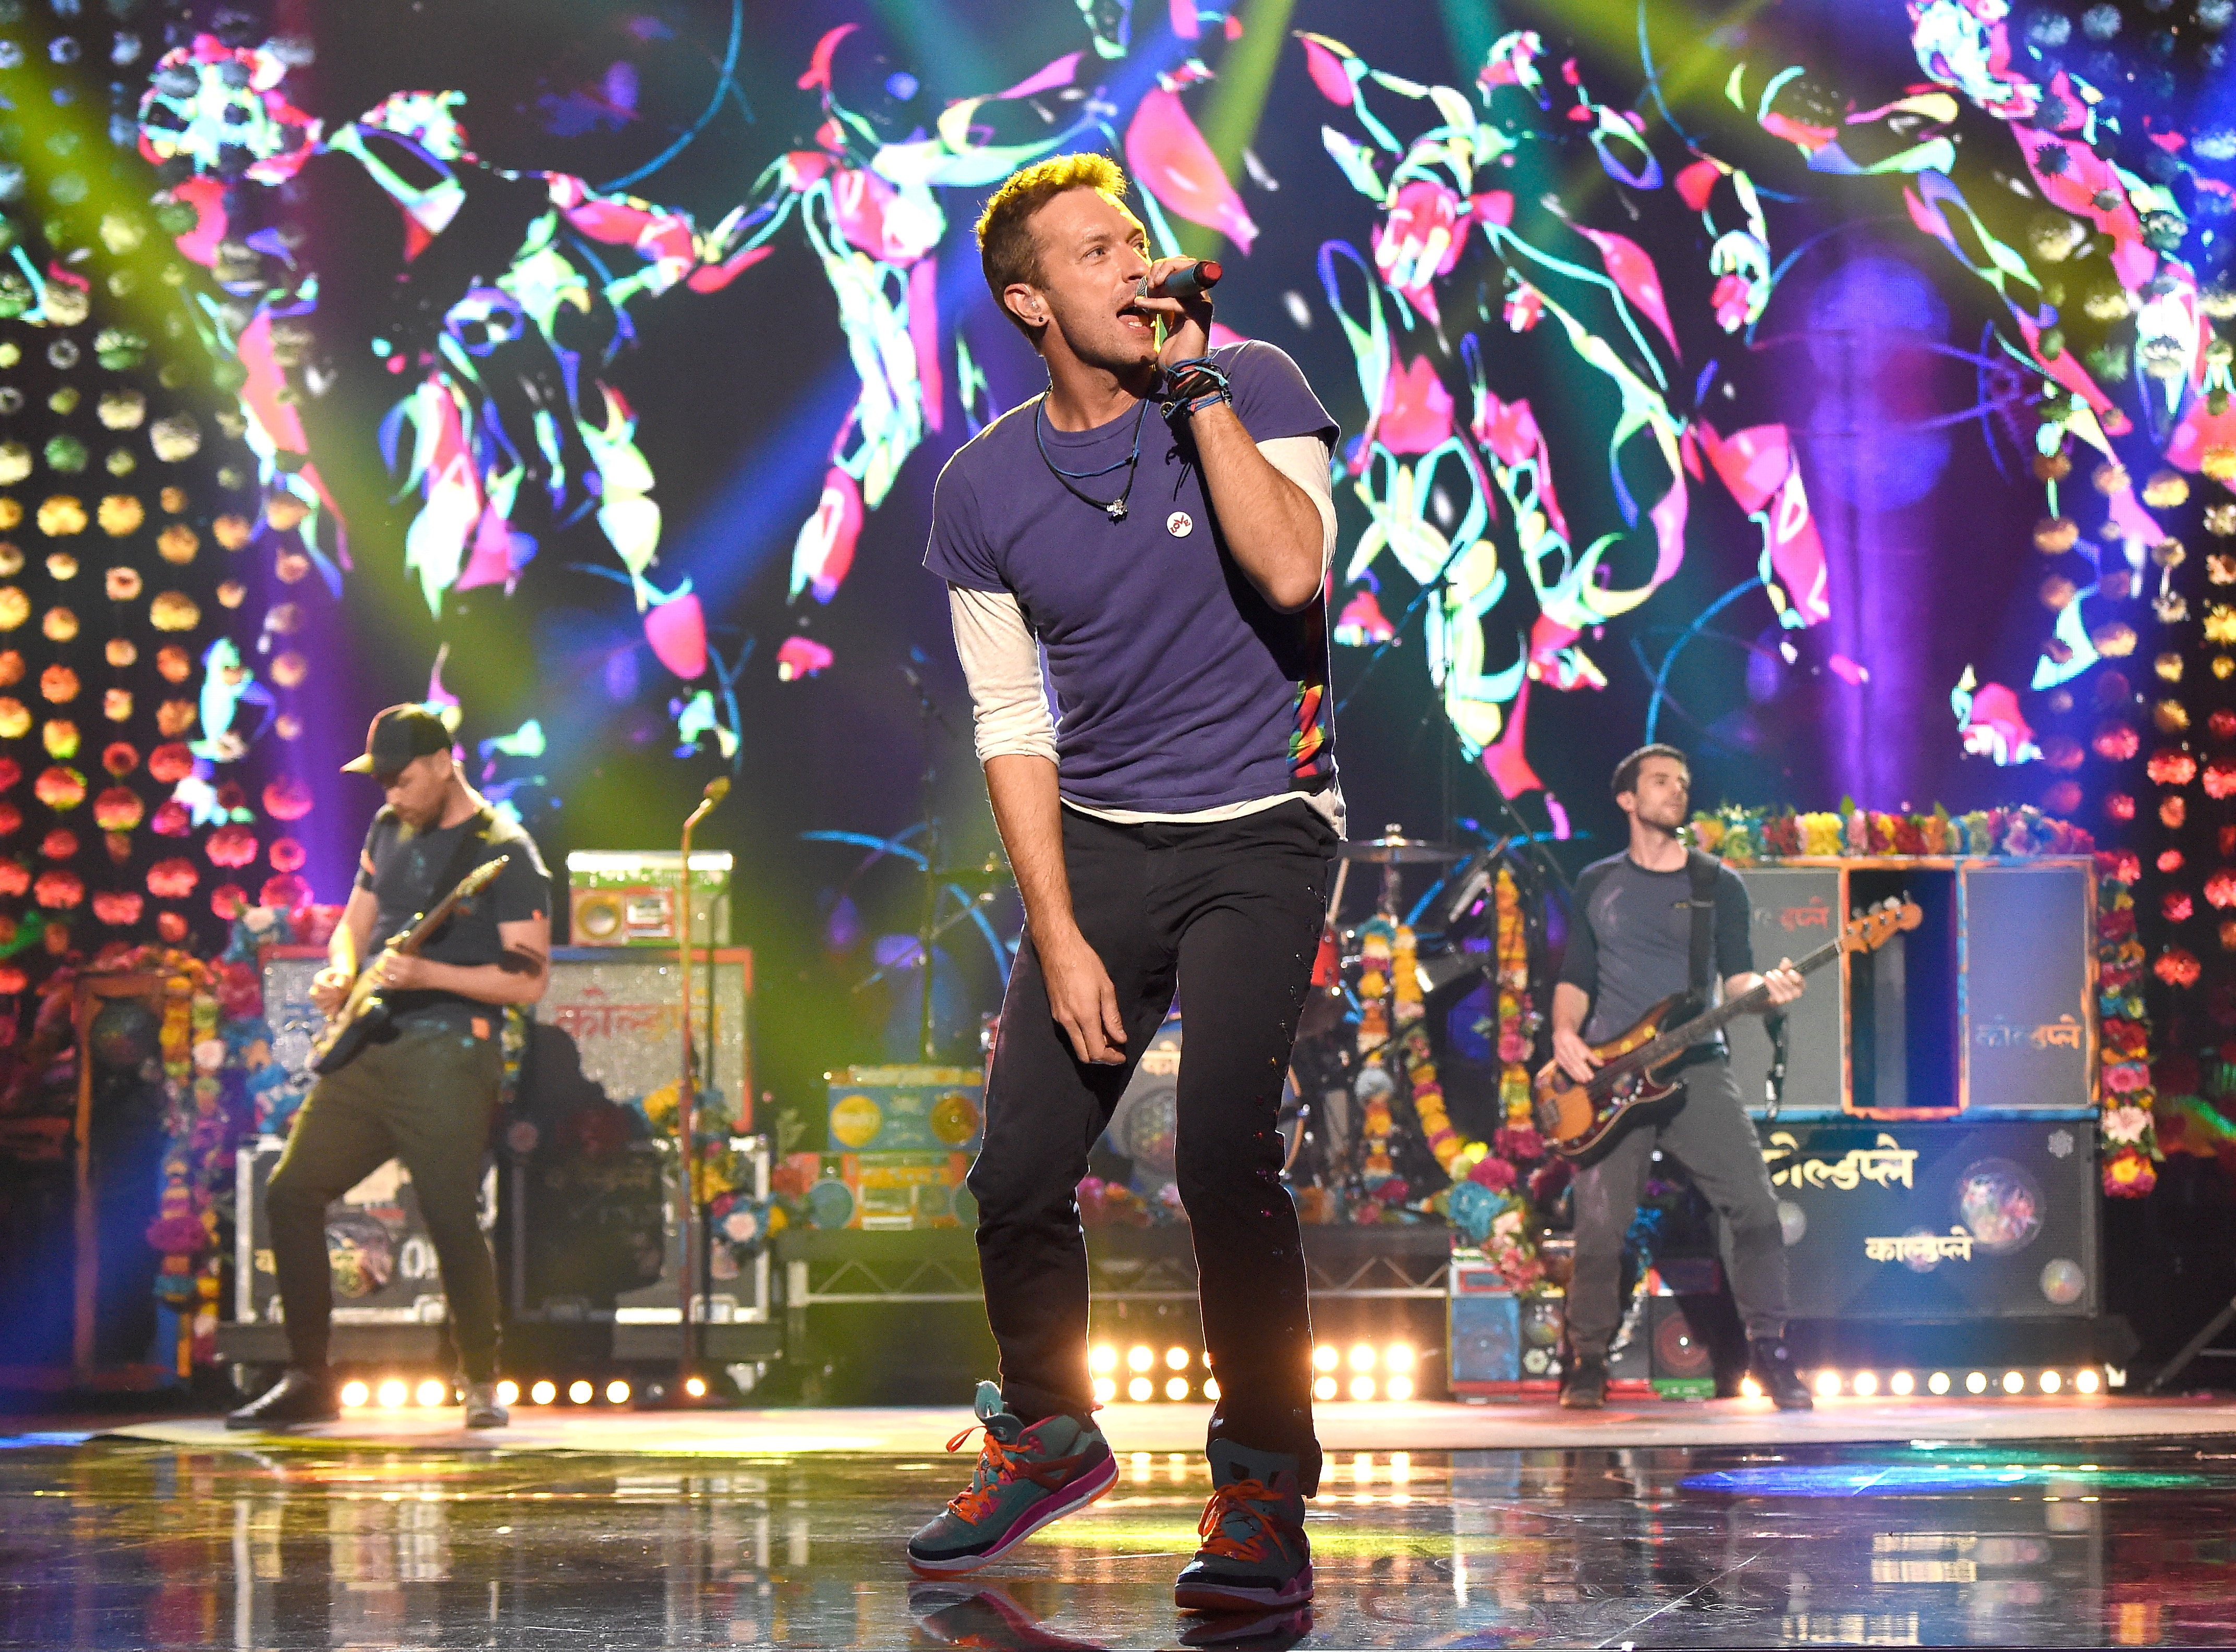 Chris Martin of Coldplay  performs onstage during the 2015 American Music Awards at Microsoft Theater on Nov. 22, 2015 in Los Angeles.